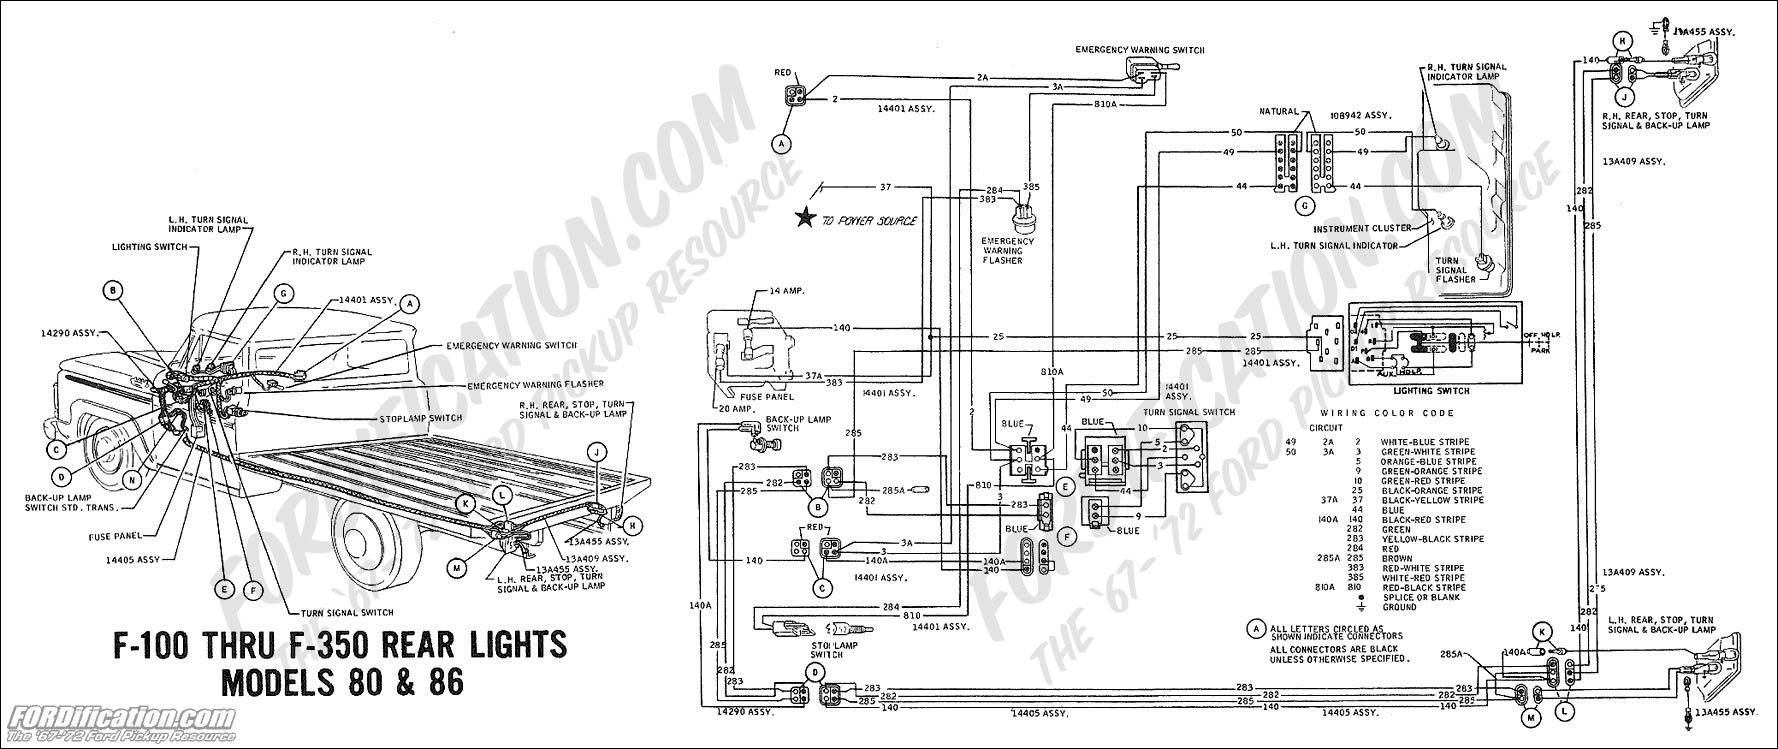 Light Diagram 1965 Ford F 100 Wiring Strategy Design Plan 1962 Truck Technical Drawings And Schematics Section H Rh Fordification Com 1990 Ranger